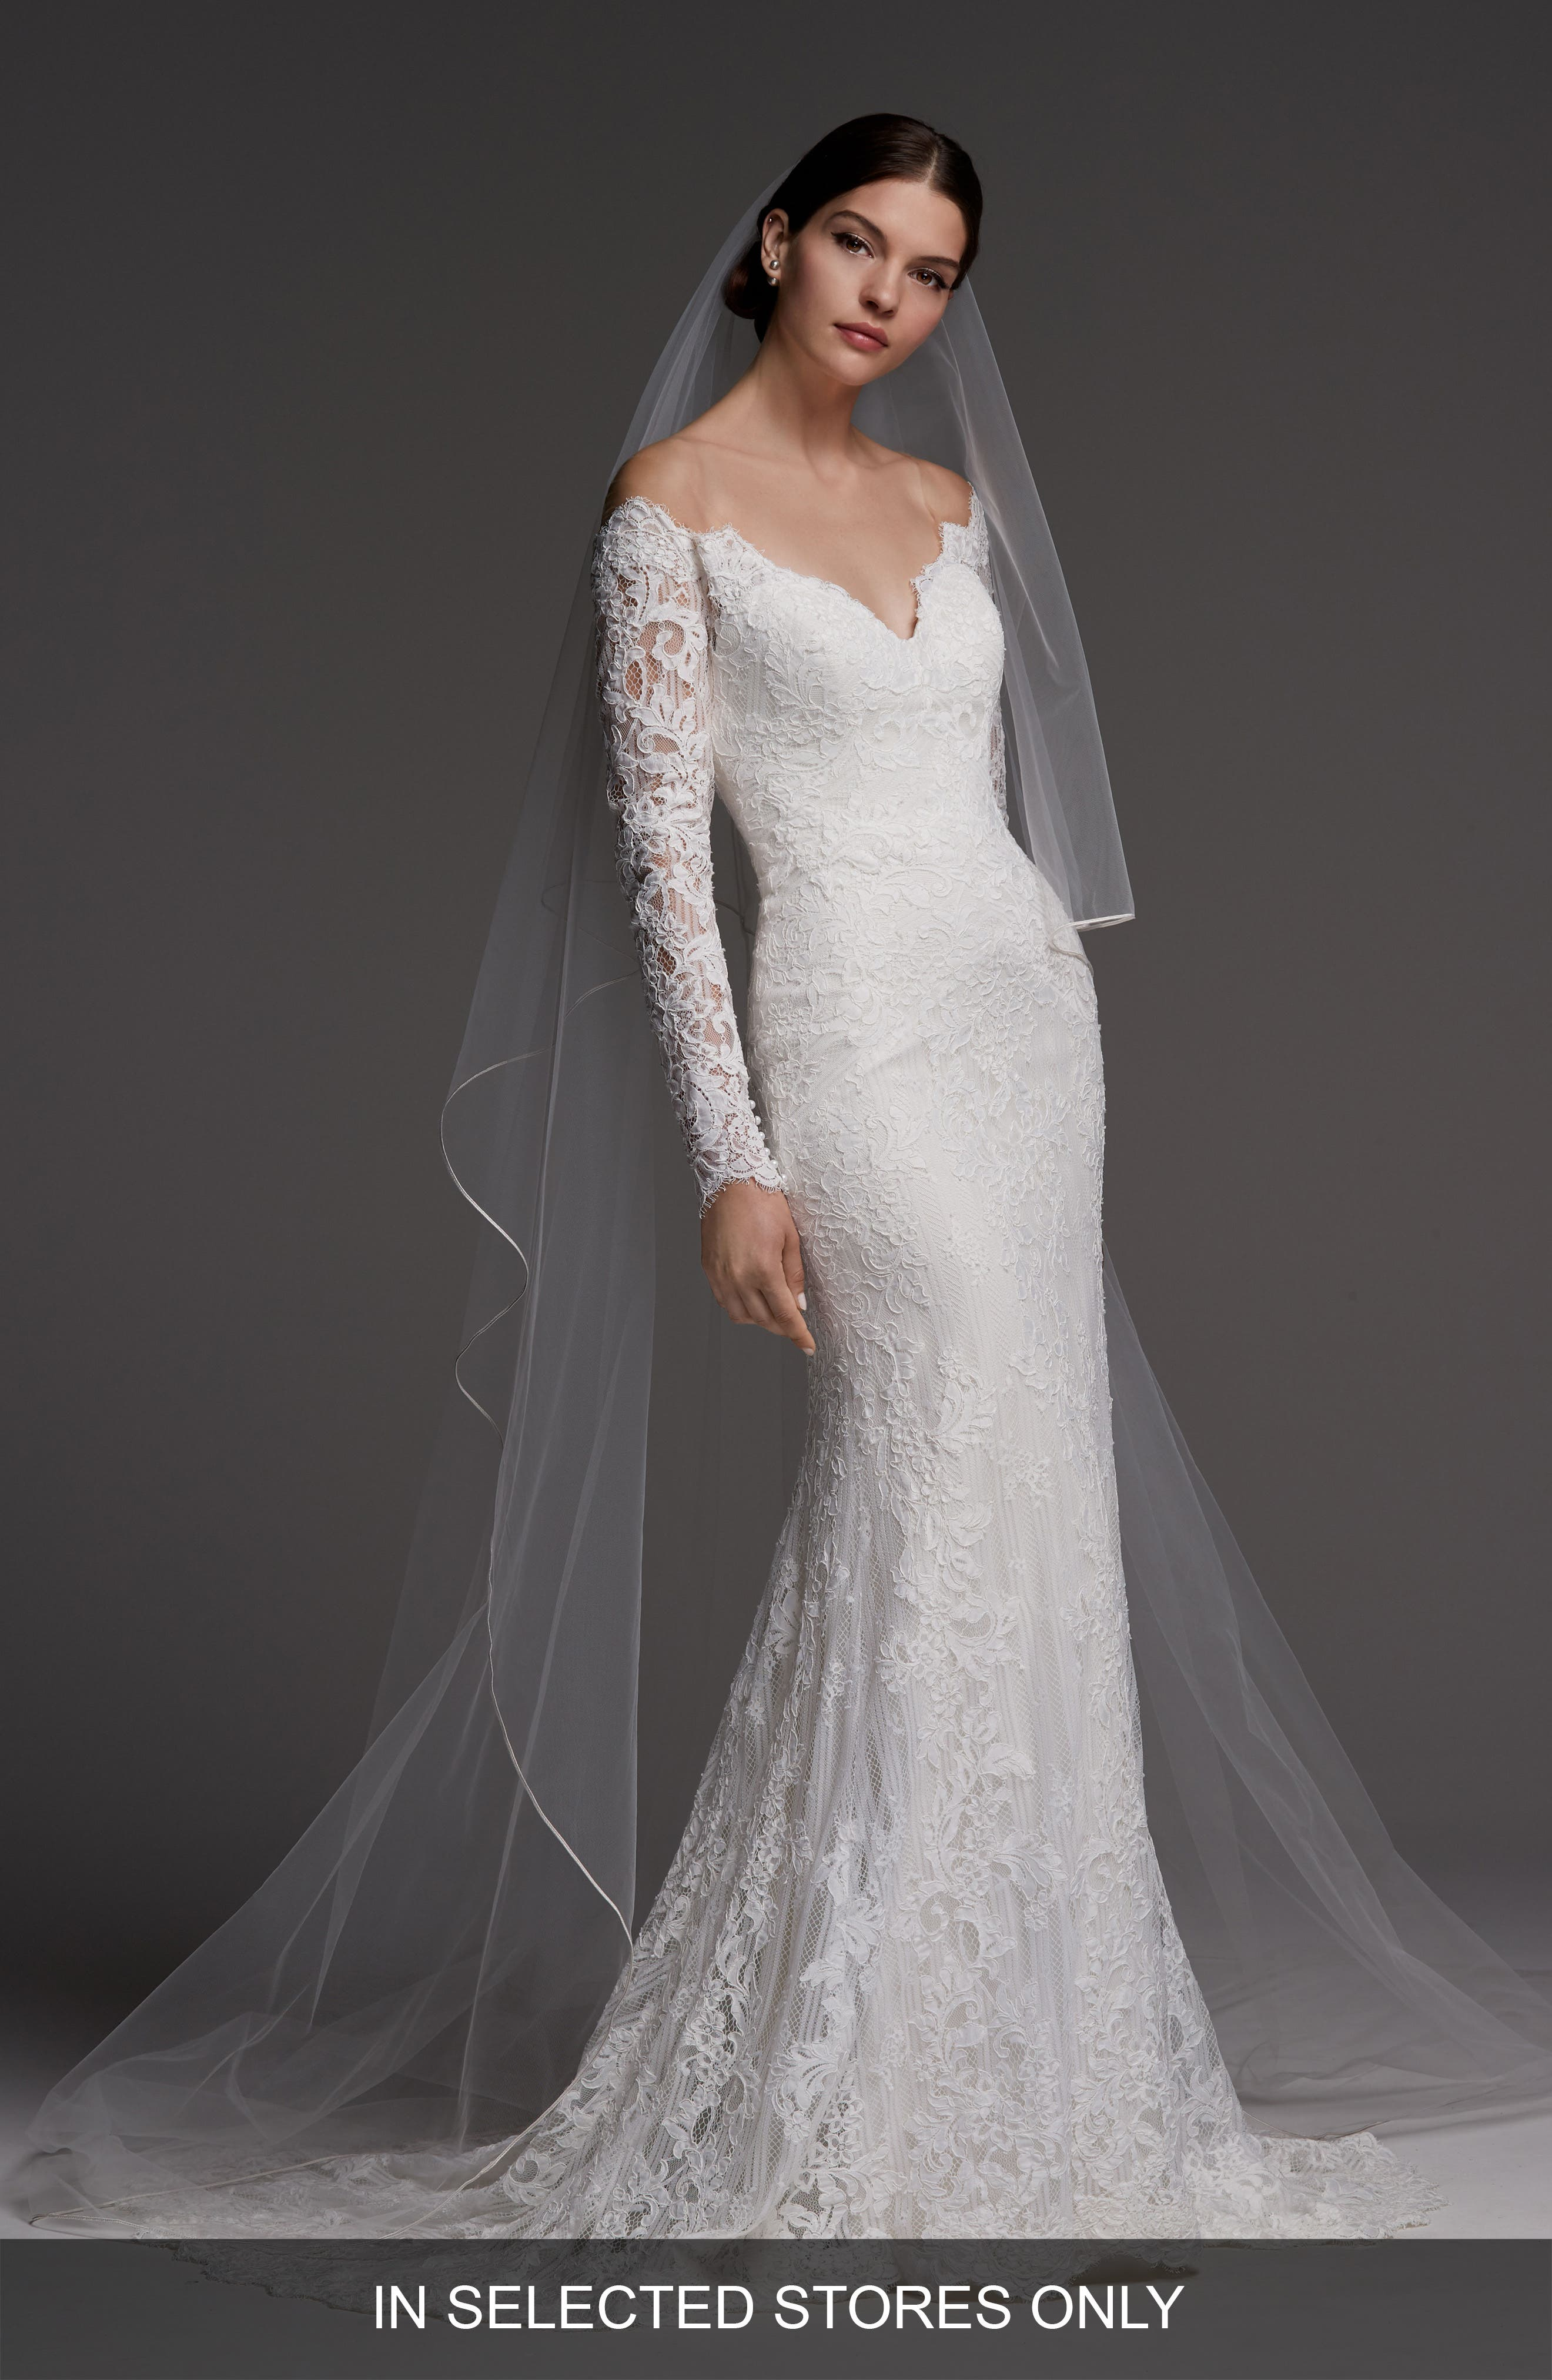 Visconti Long Sleeve Lace Gown,                             Main thumbnail 1, color,                             IVORY/ OYSTER